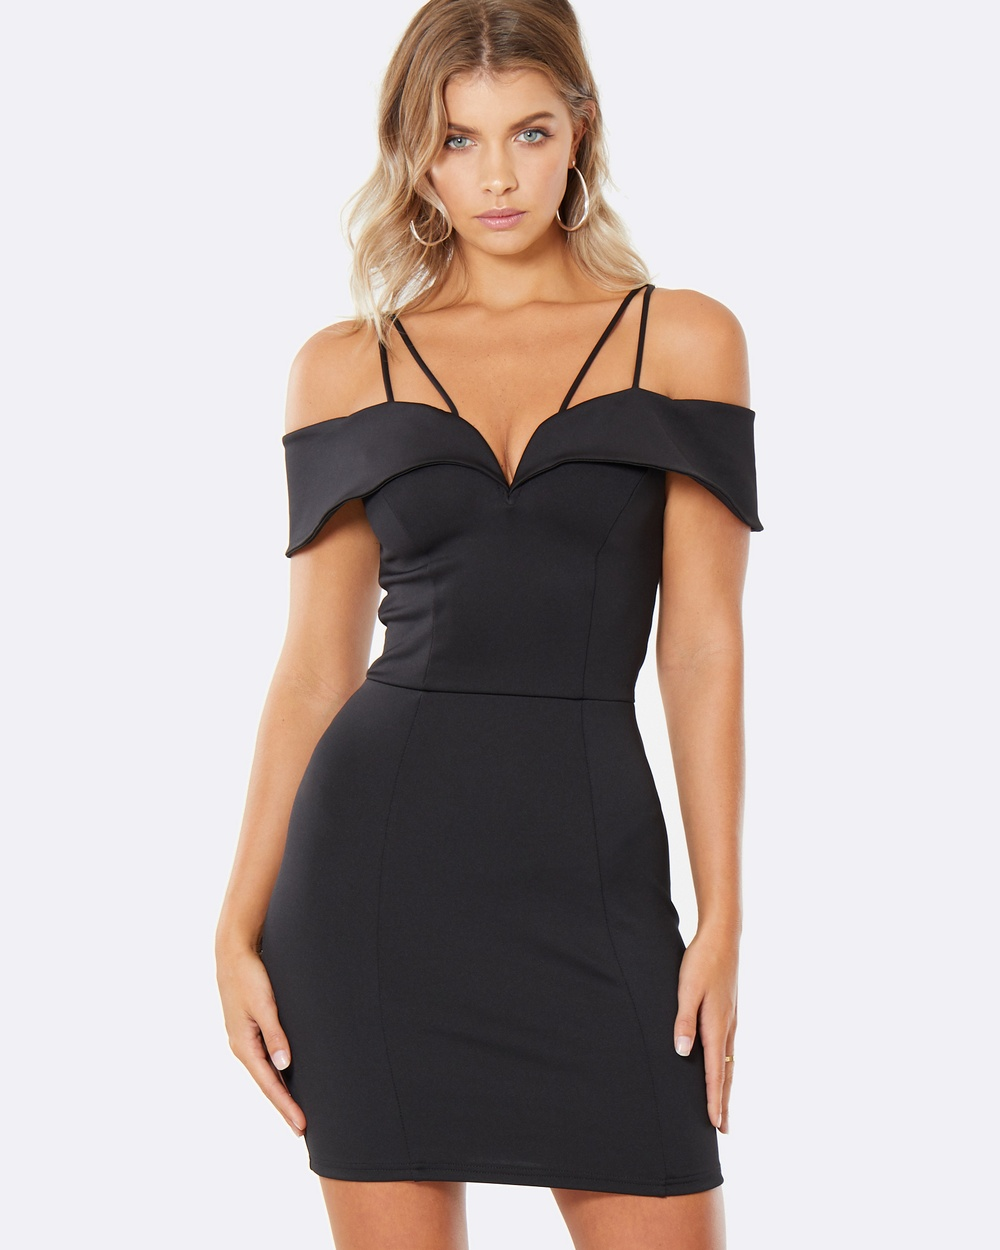 Calli Zoey Ada Mini Dress Bodycon Dresses Black Zoey Ada Mini Dress